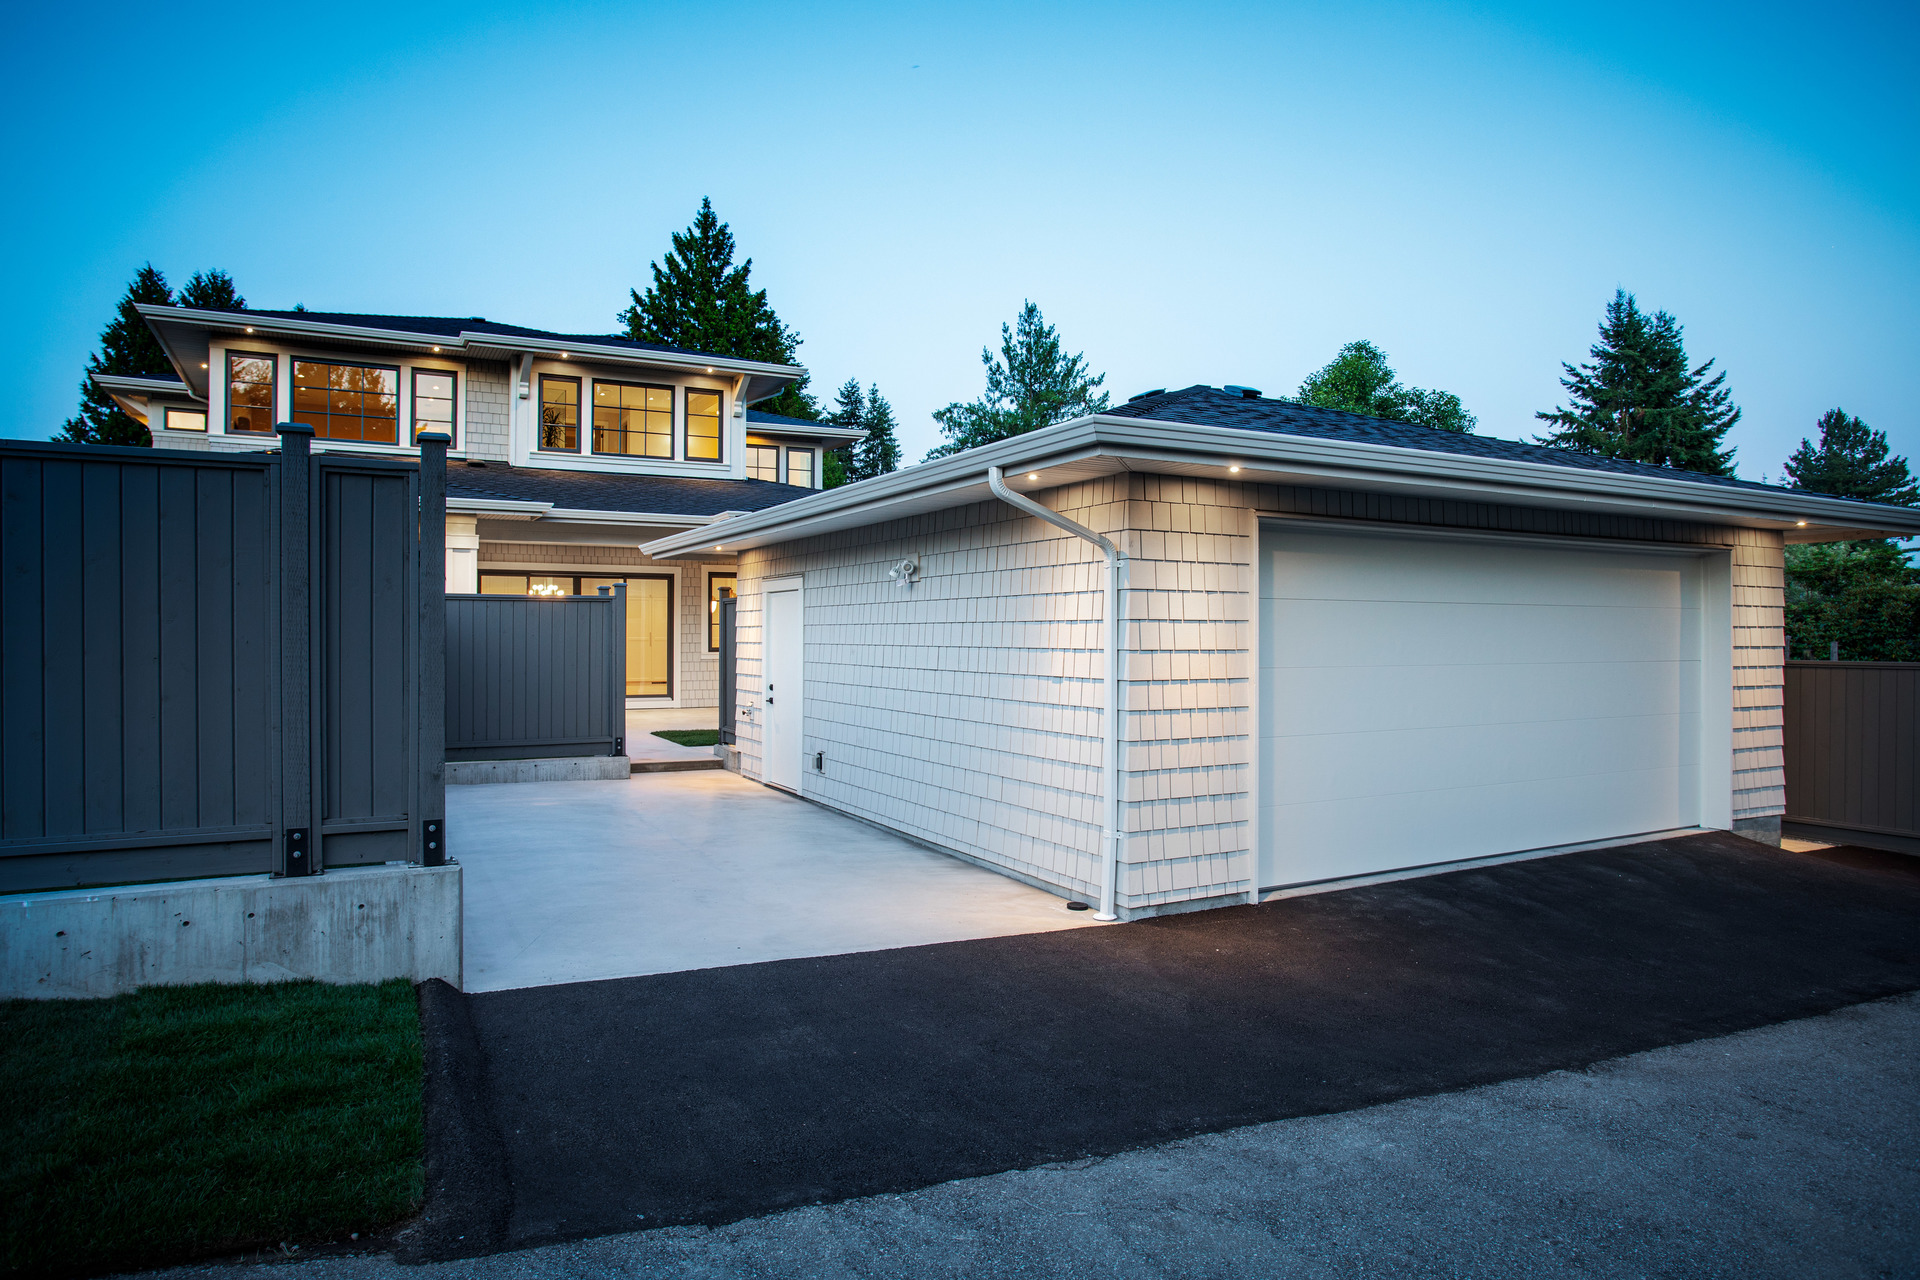 jh35 at 558 Berry Street, Central Coquitlam, Coquitlam